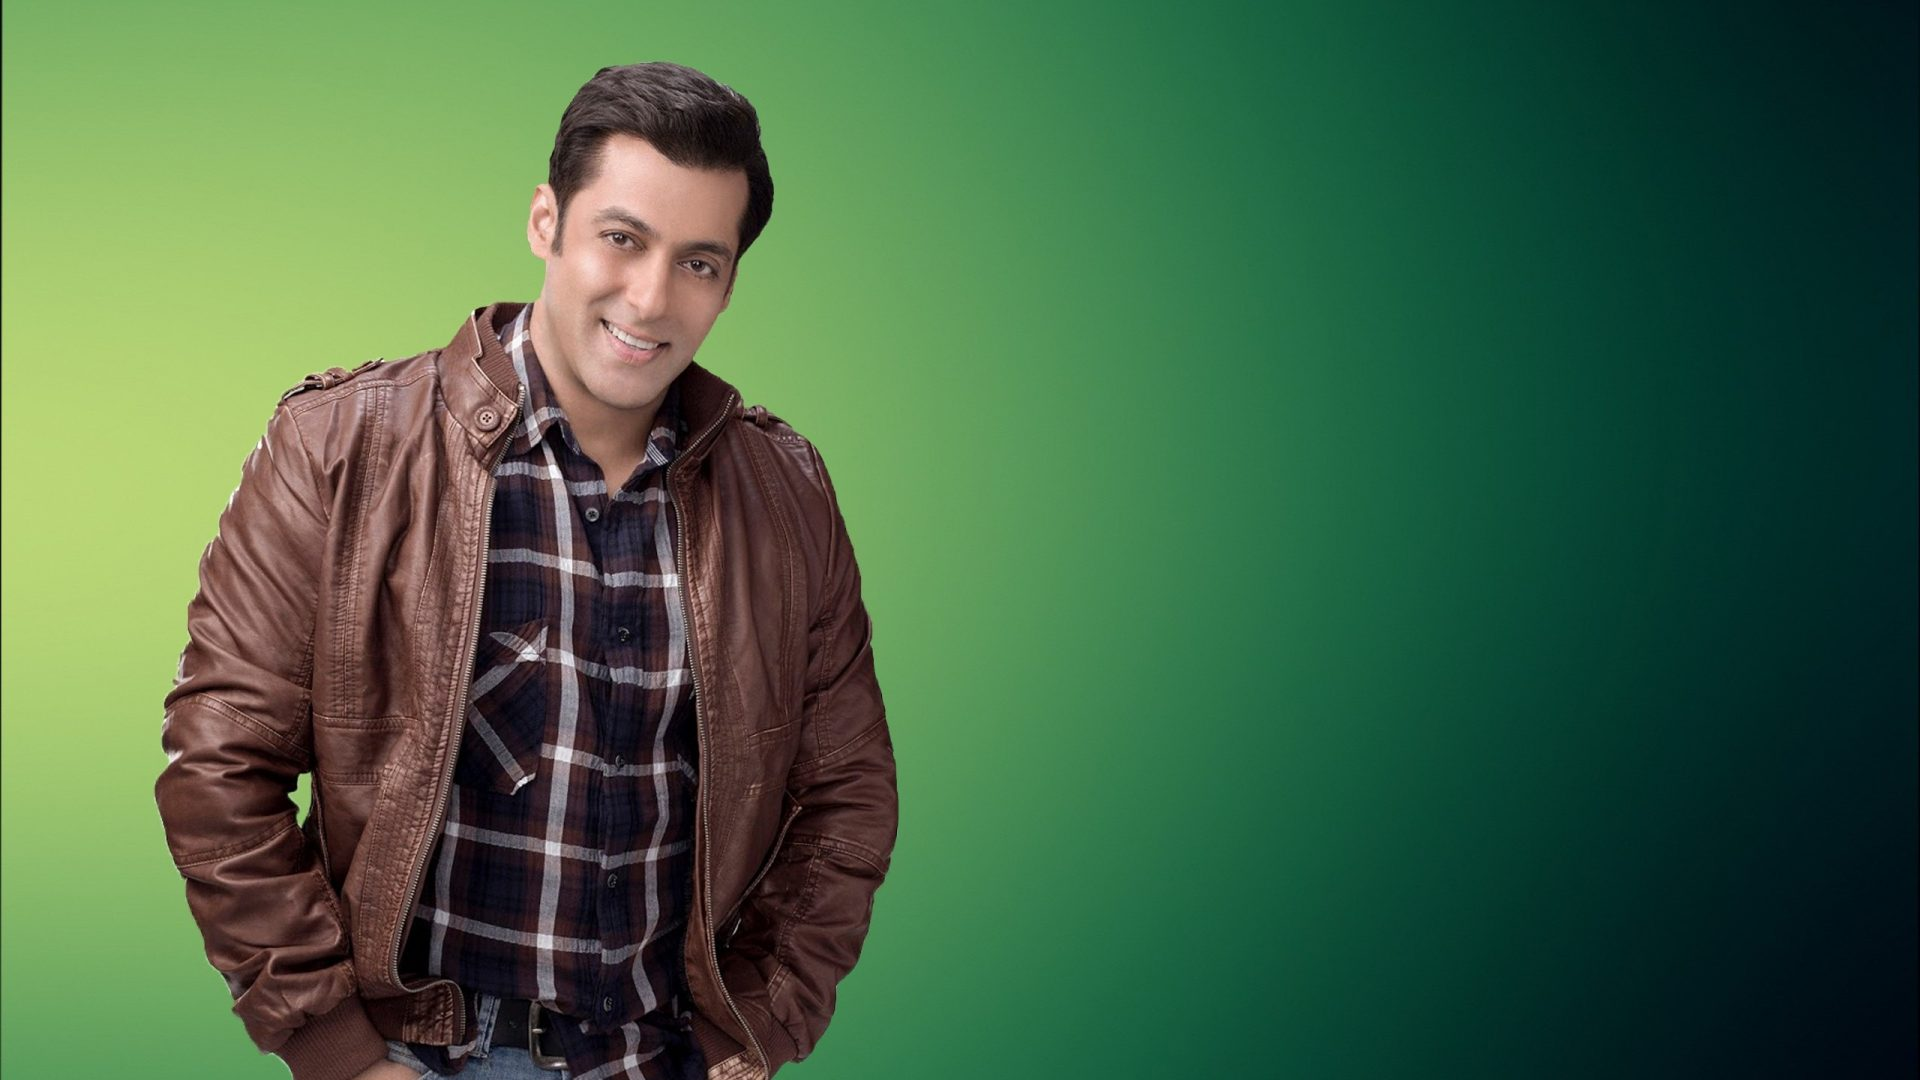 Salman Khan Hindi Films Actor Full Hd Green Desktop Wallpapers Hd Wallpapers Hd Backgrounds Tumblr Backgrounds Images Pictures